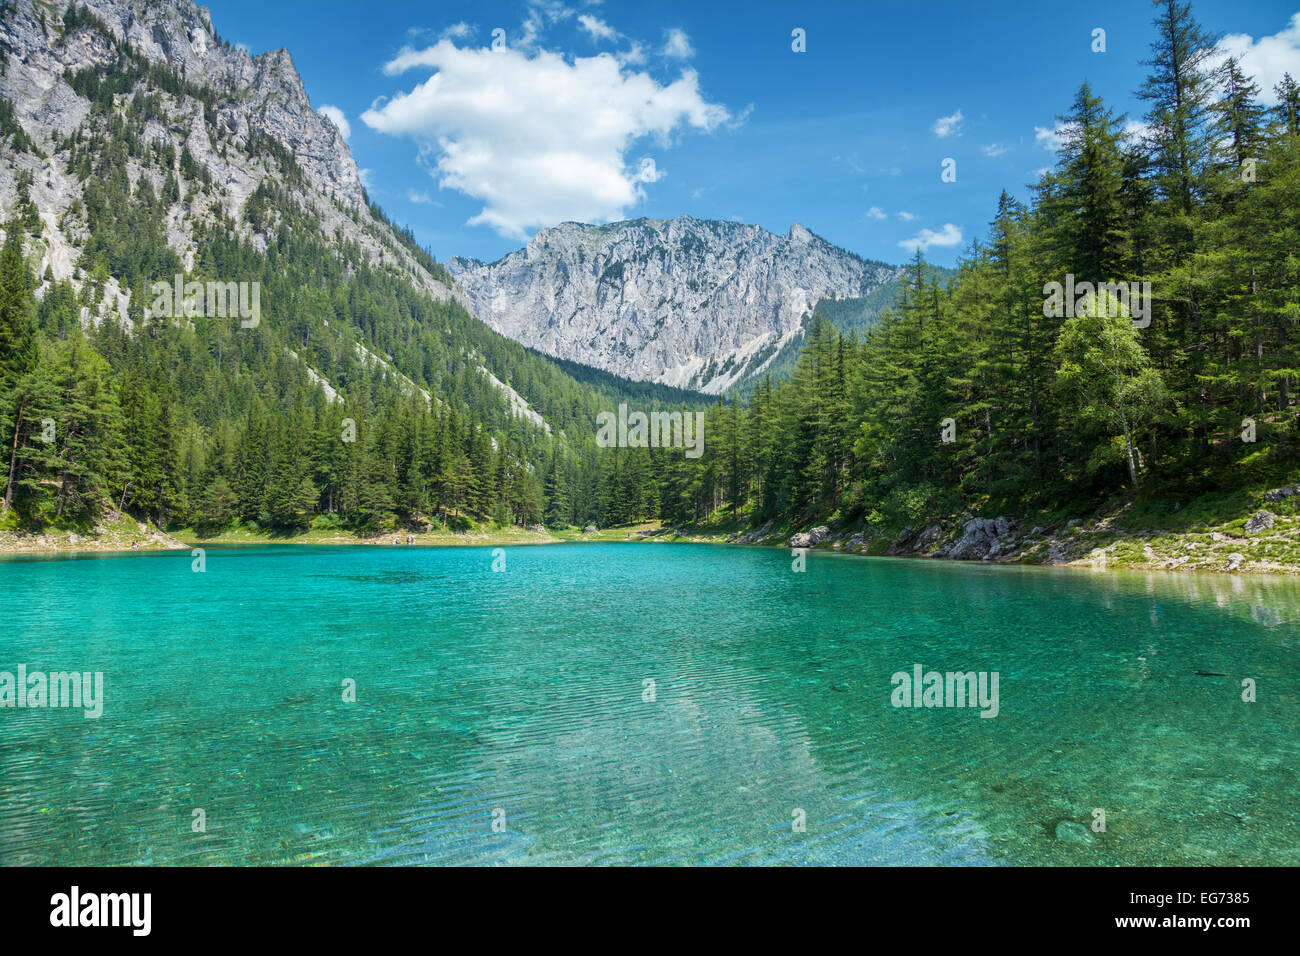 Grüner see with crystal clear water in Austrian Alps Stock Photo